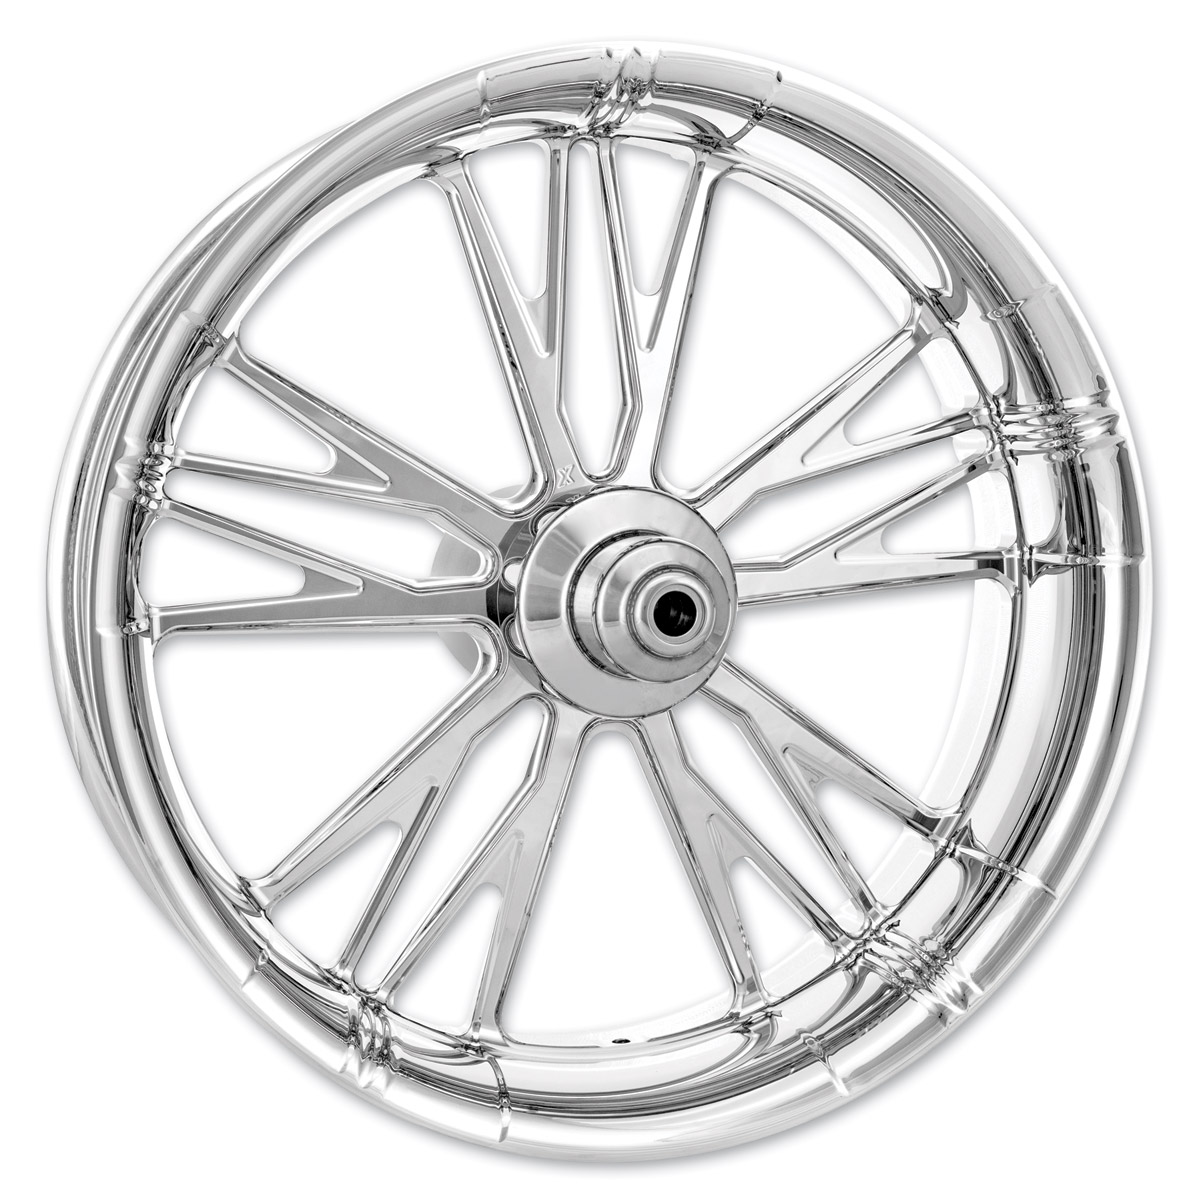 Xtreme Machine Chrome Forged Execute Front Wheel, 23″ x 3.5″ with ABS